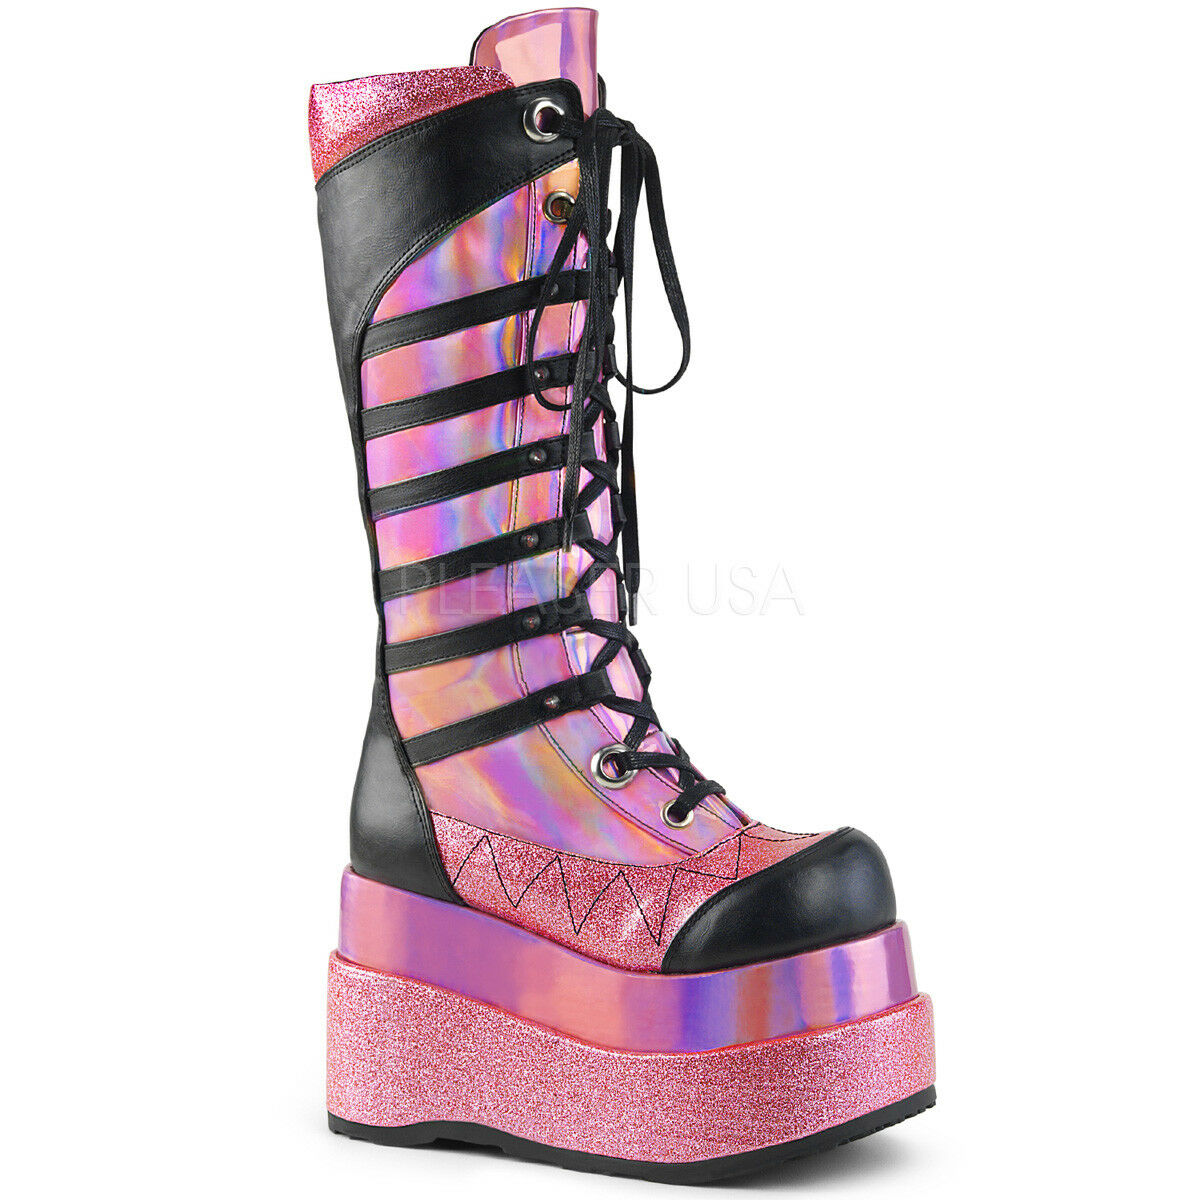 Demonia Bear-205 Rave Cyber Goth Punk Rave Bear-205 Knee High Platform Hologram Pink Stiefel b04ae6